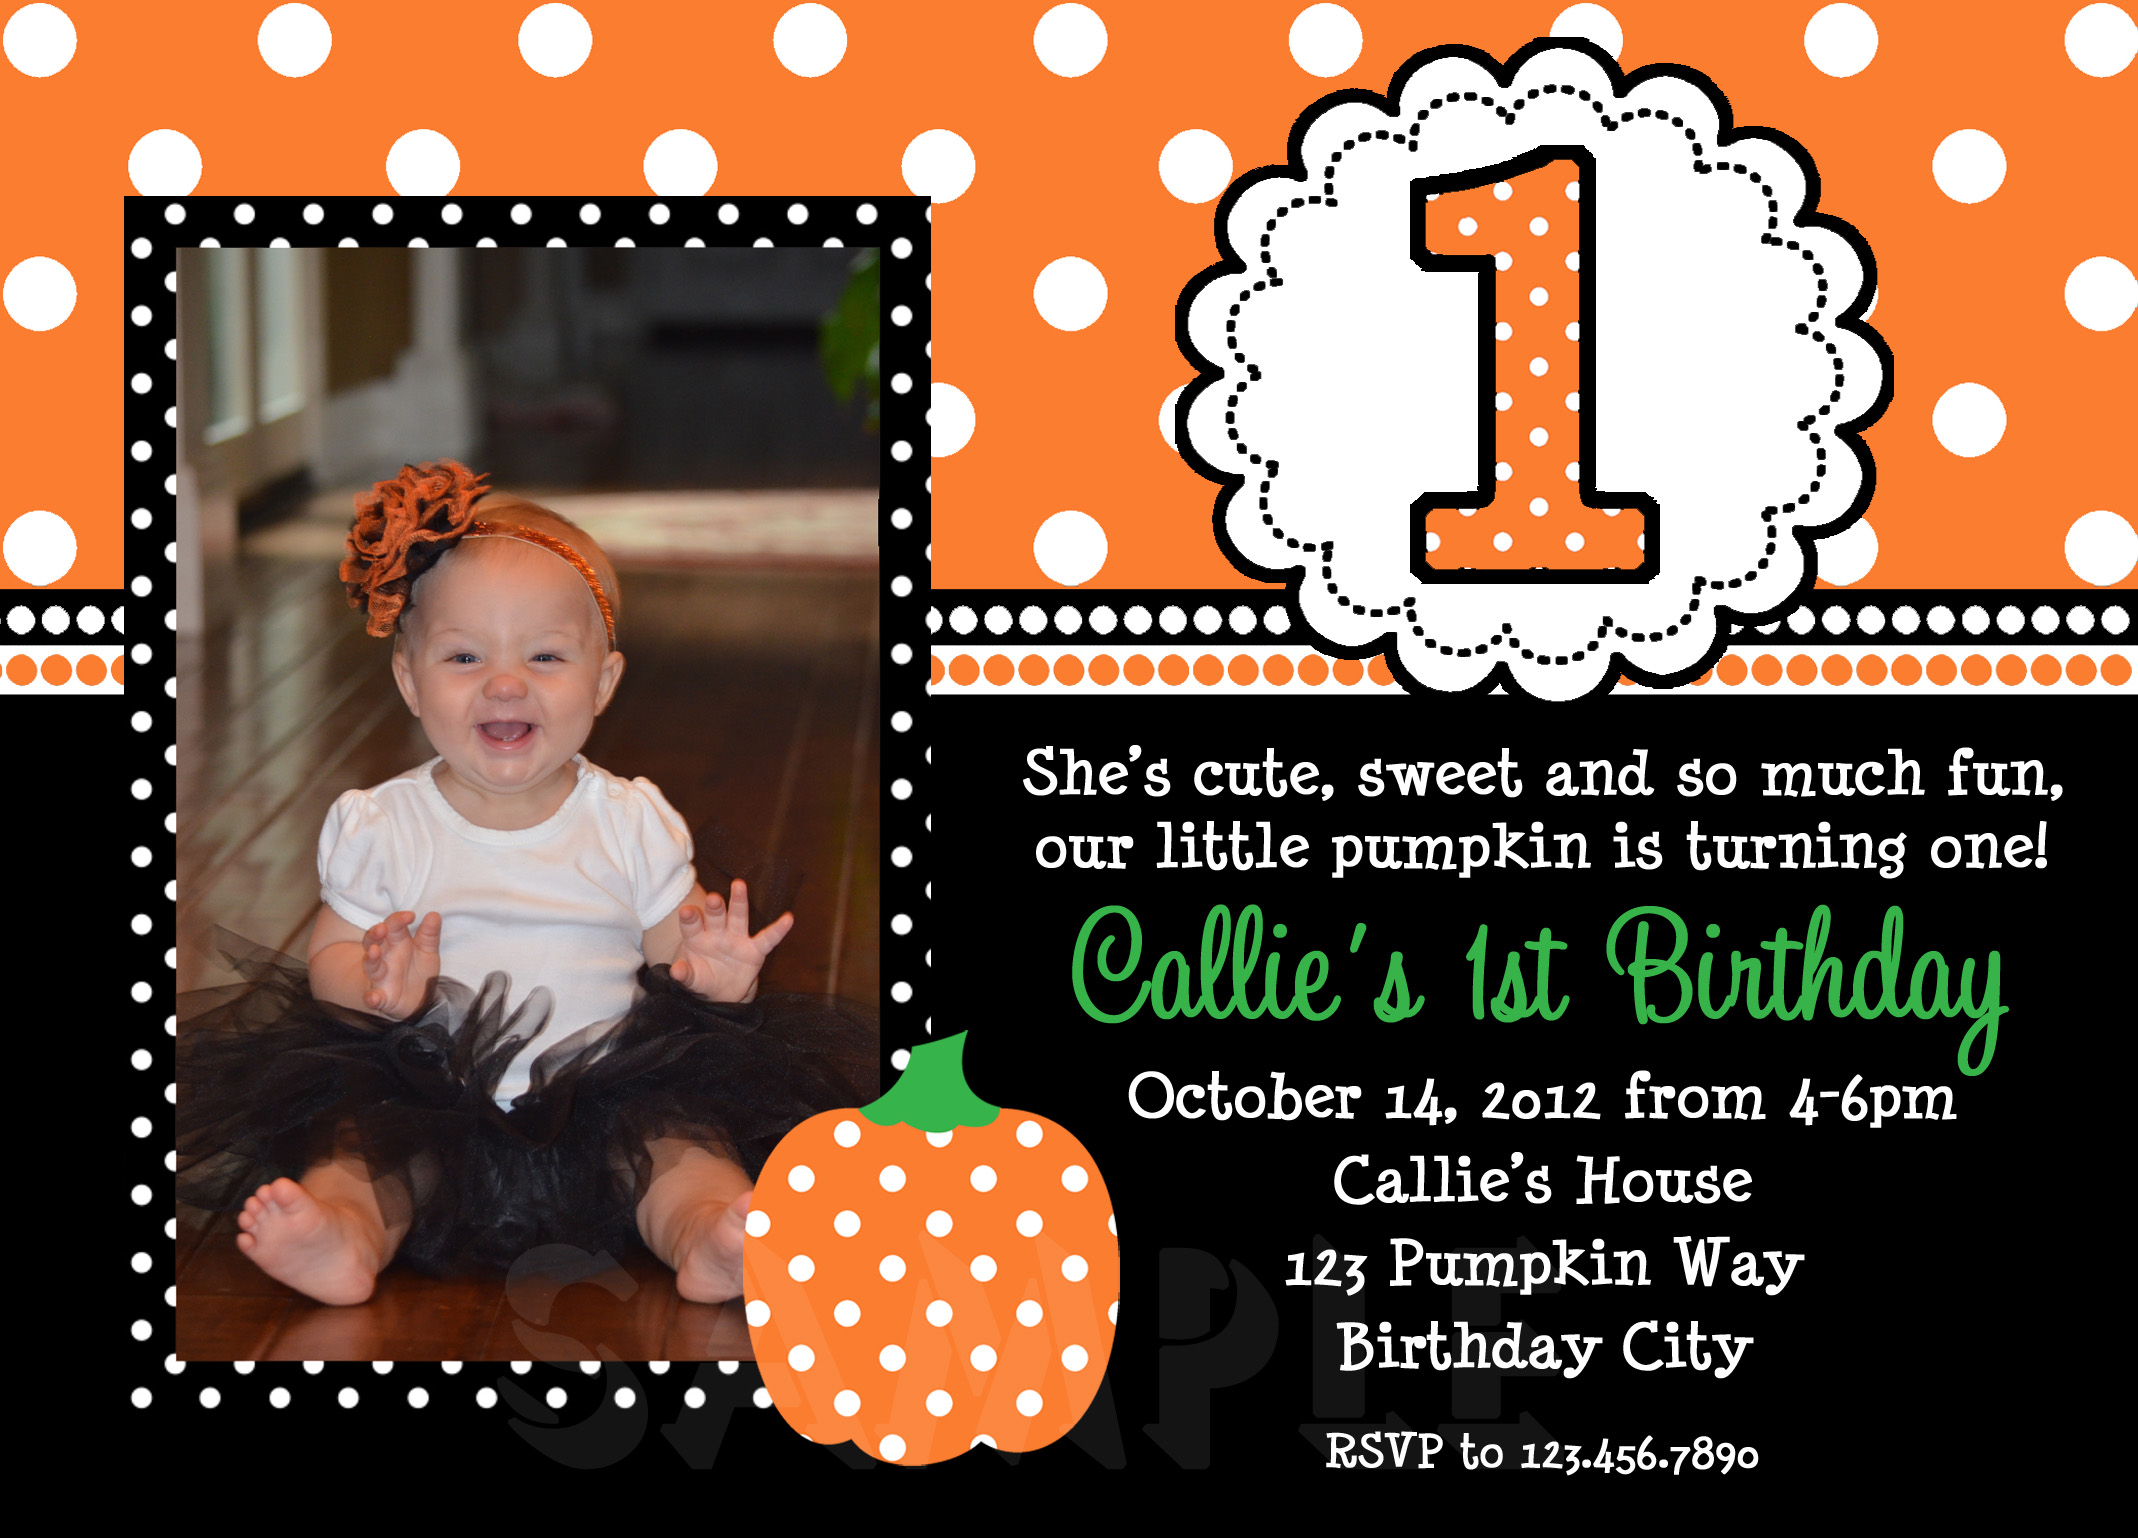 halloween first birthday photo invitations ; halloween-1st-birthday-party-invitations-is-amplifying-your-ideas-of-astonishing-Party-invitaions-to-the-top-1